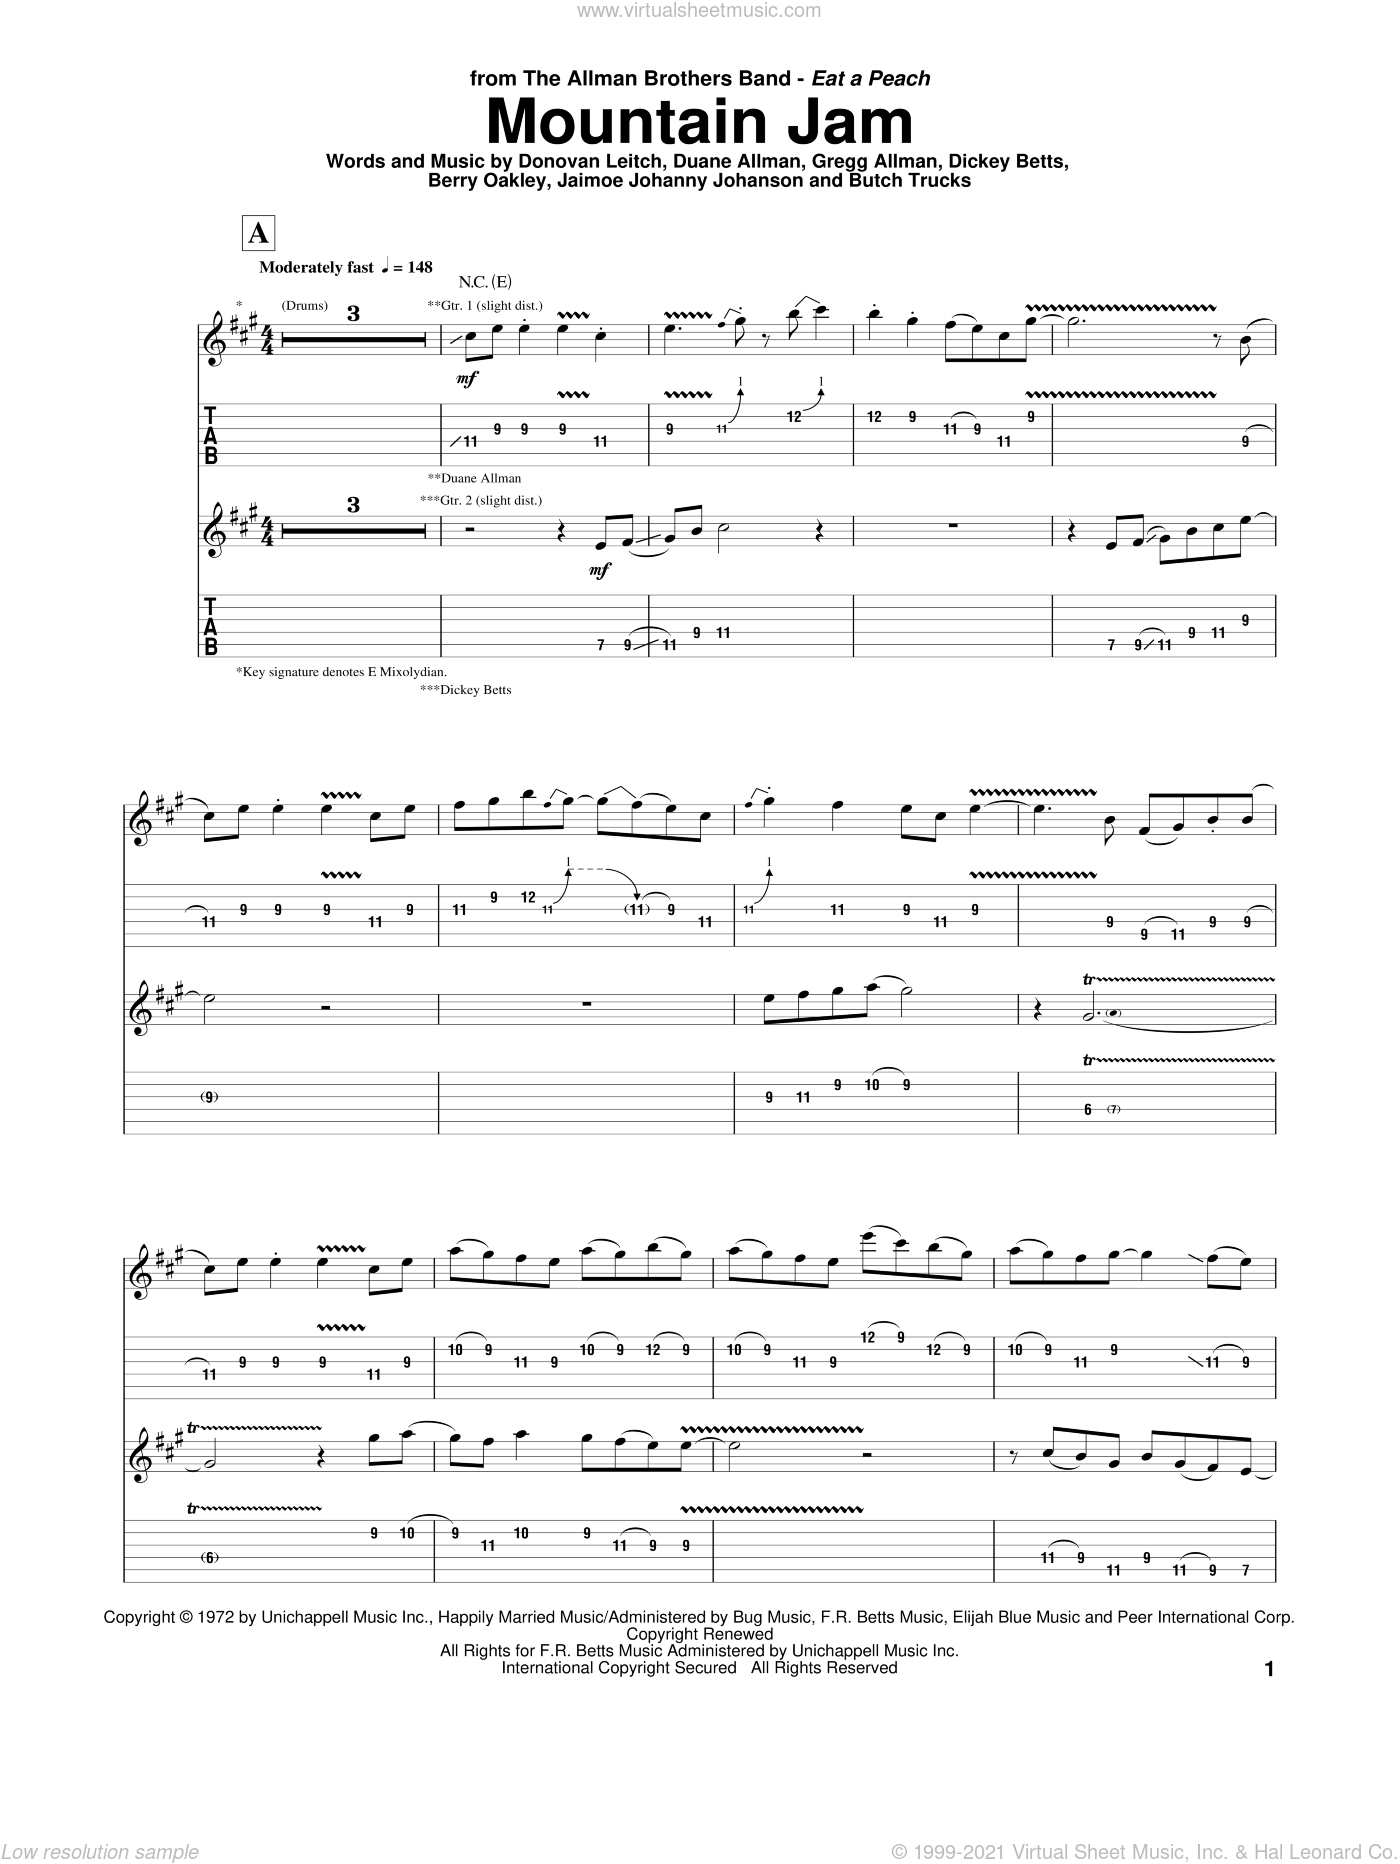 Mountain Jam sheet music for guitar (tablature) by Allman Brothers Band, The Allman Brothers Band, Dickey Betts, Duane Allman and Gregg Allman, intermediate